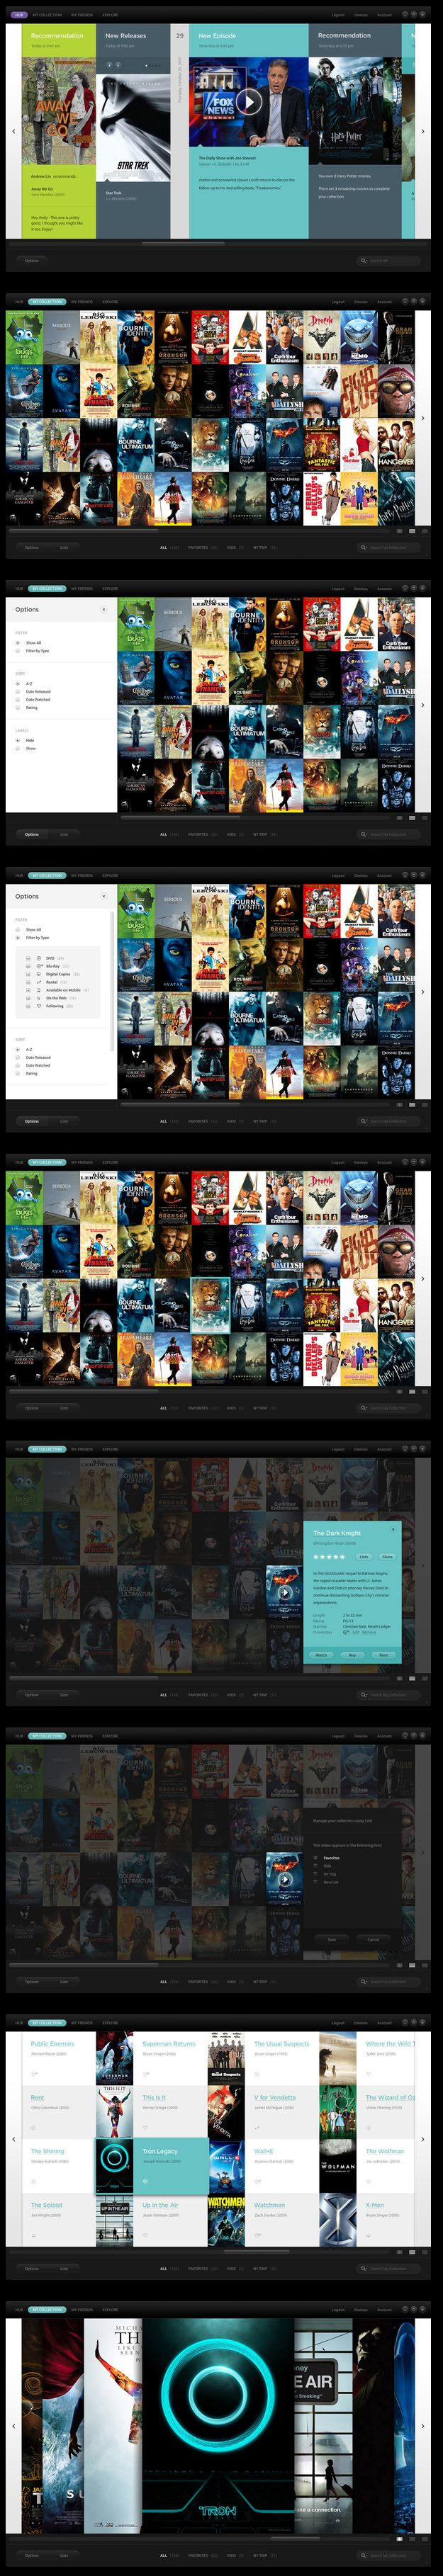 Warner Bros - I'm into grids, like really into grids, add some images and i'm a sucker